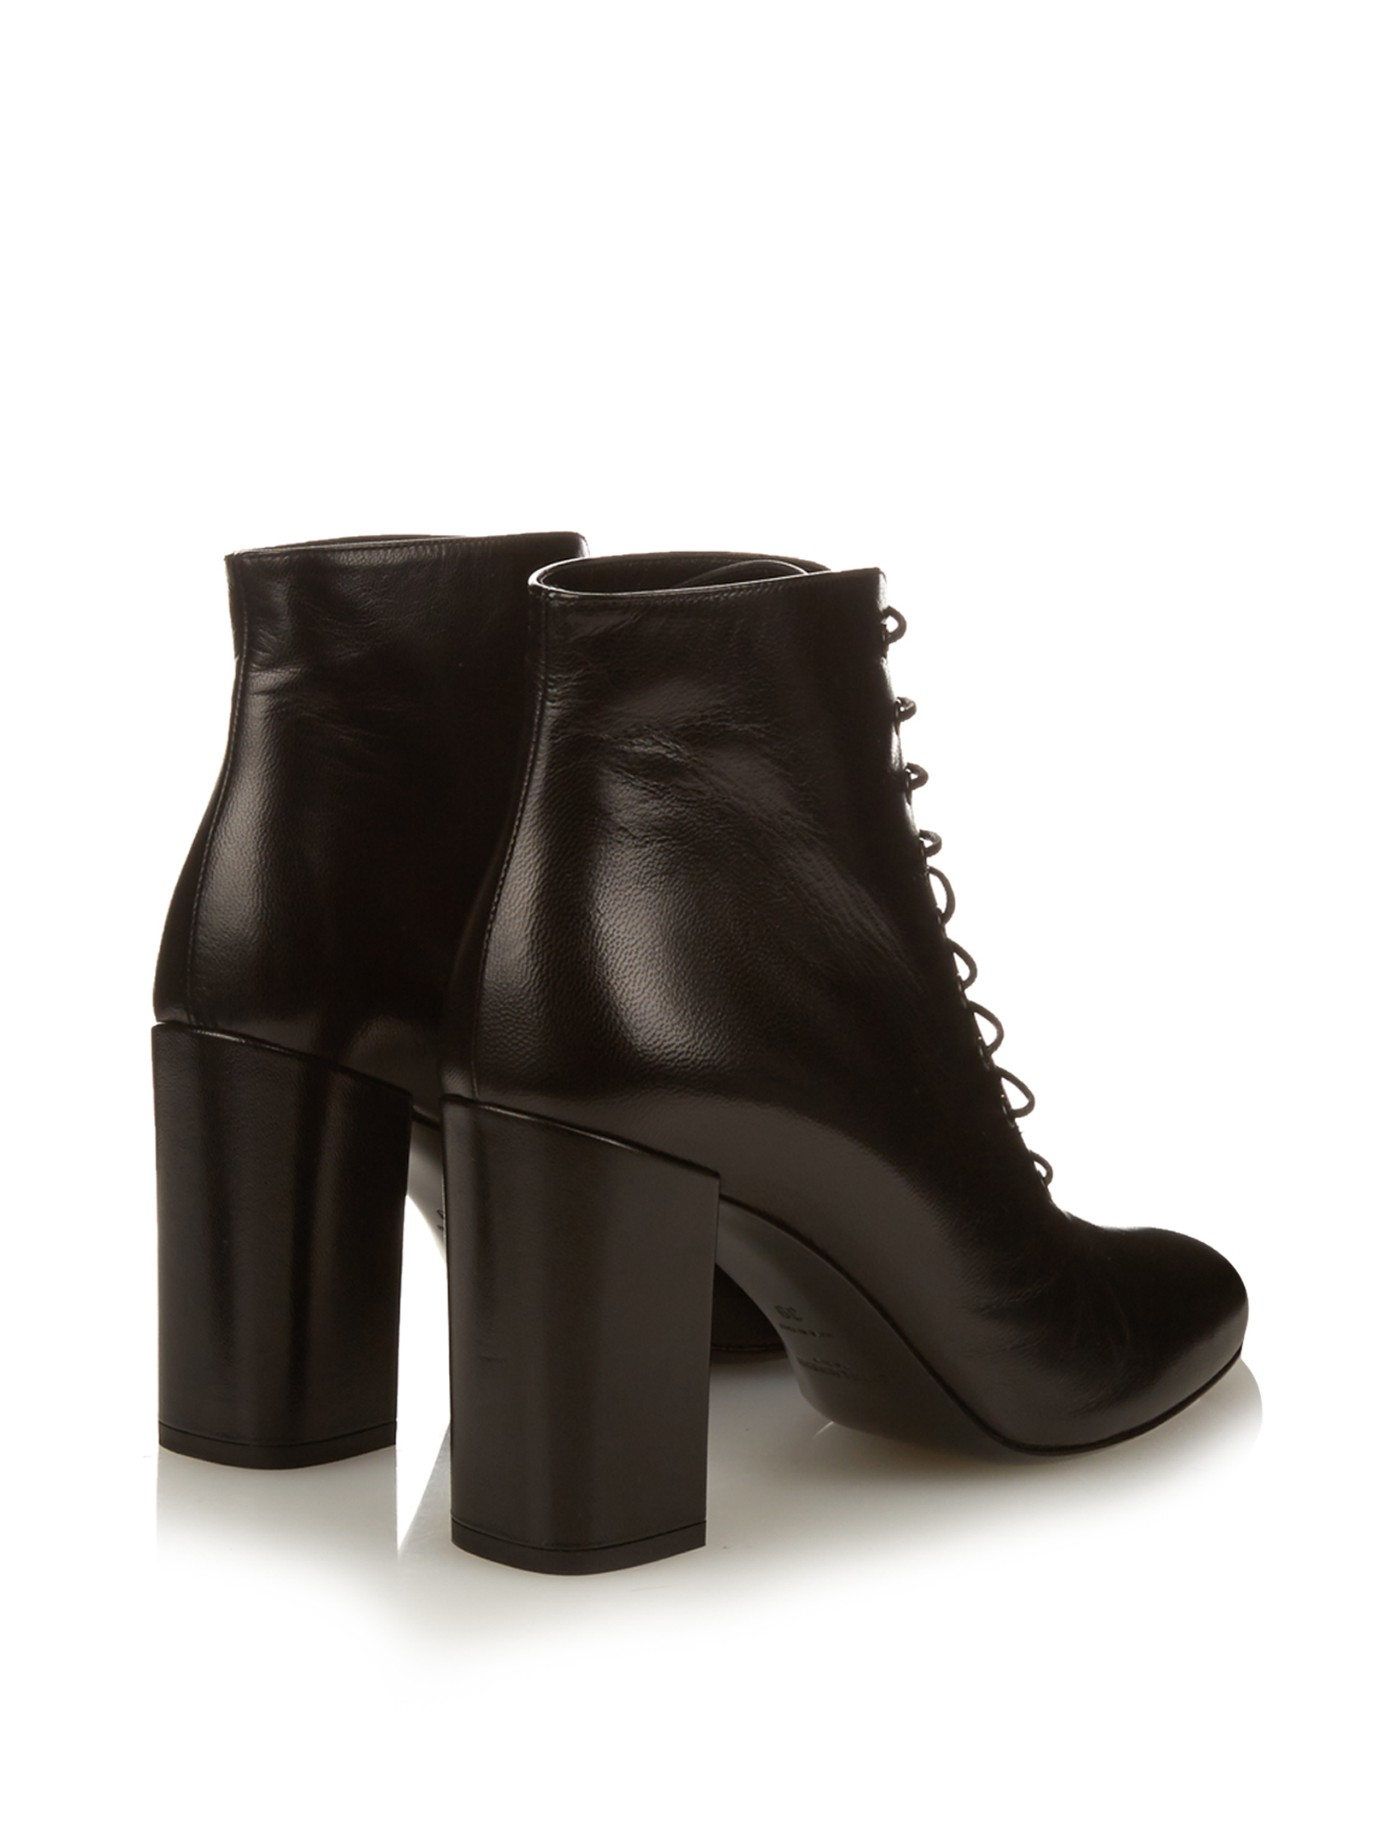 buy cheap 2014 newest Saint Laurent Leather Round-Toe Ankle Boots cheap sast yMlWWvj